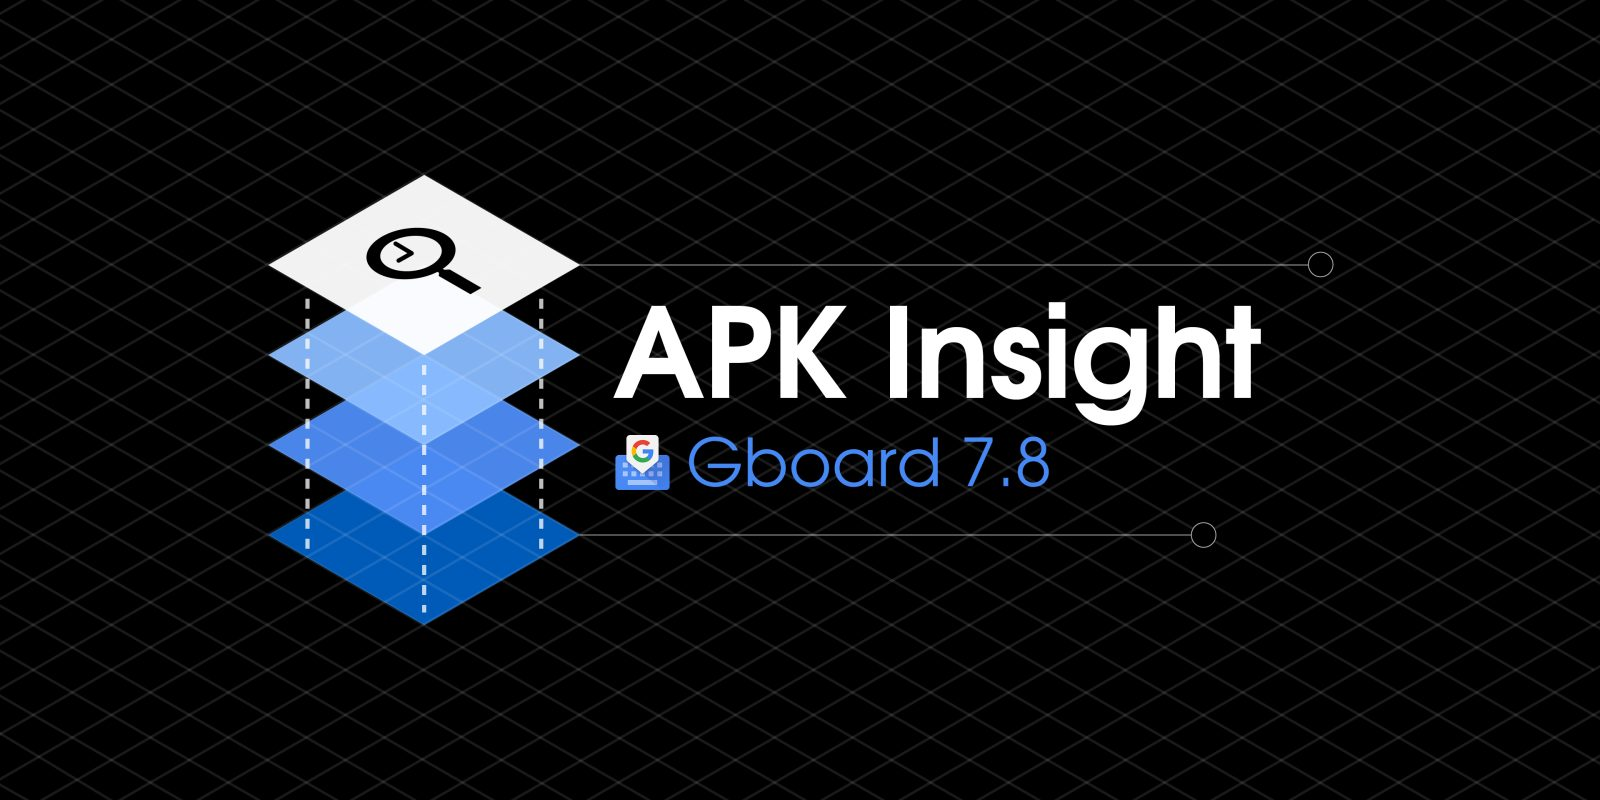 [Update: Google Material Theme] Gboard 7.8 preps redesigned emoji panel, voice typing history, language, more [APK Insight]